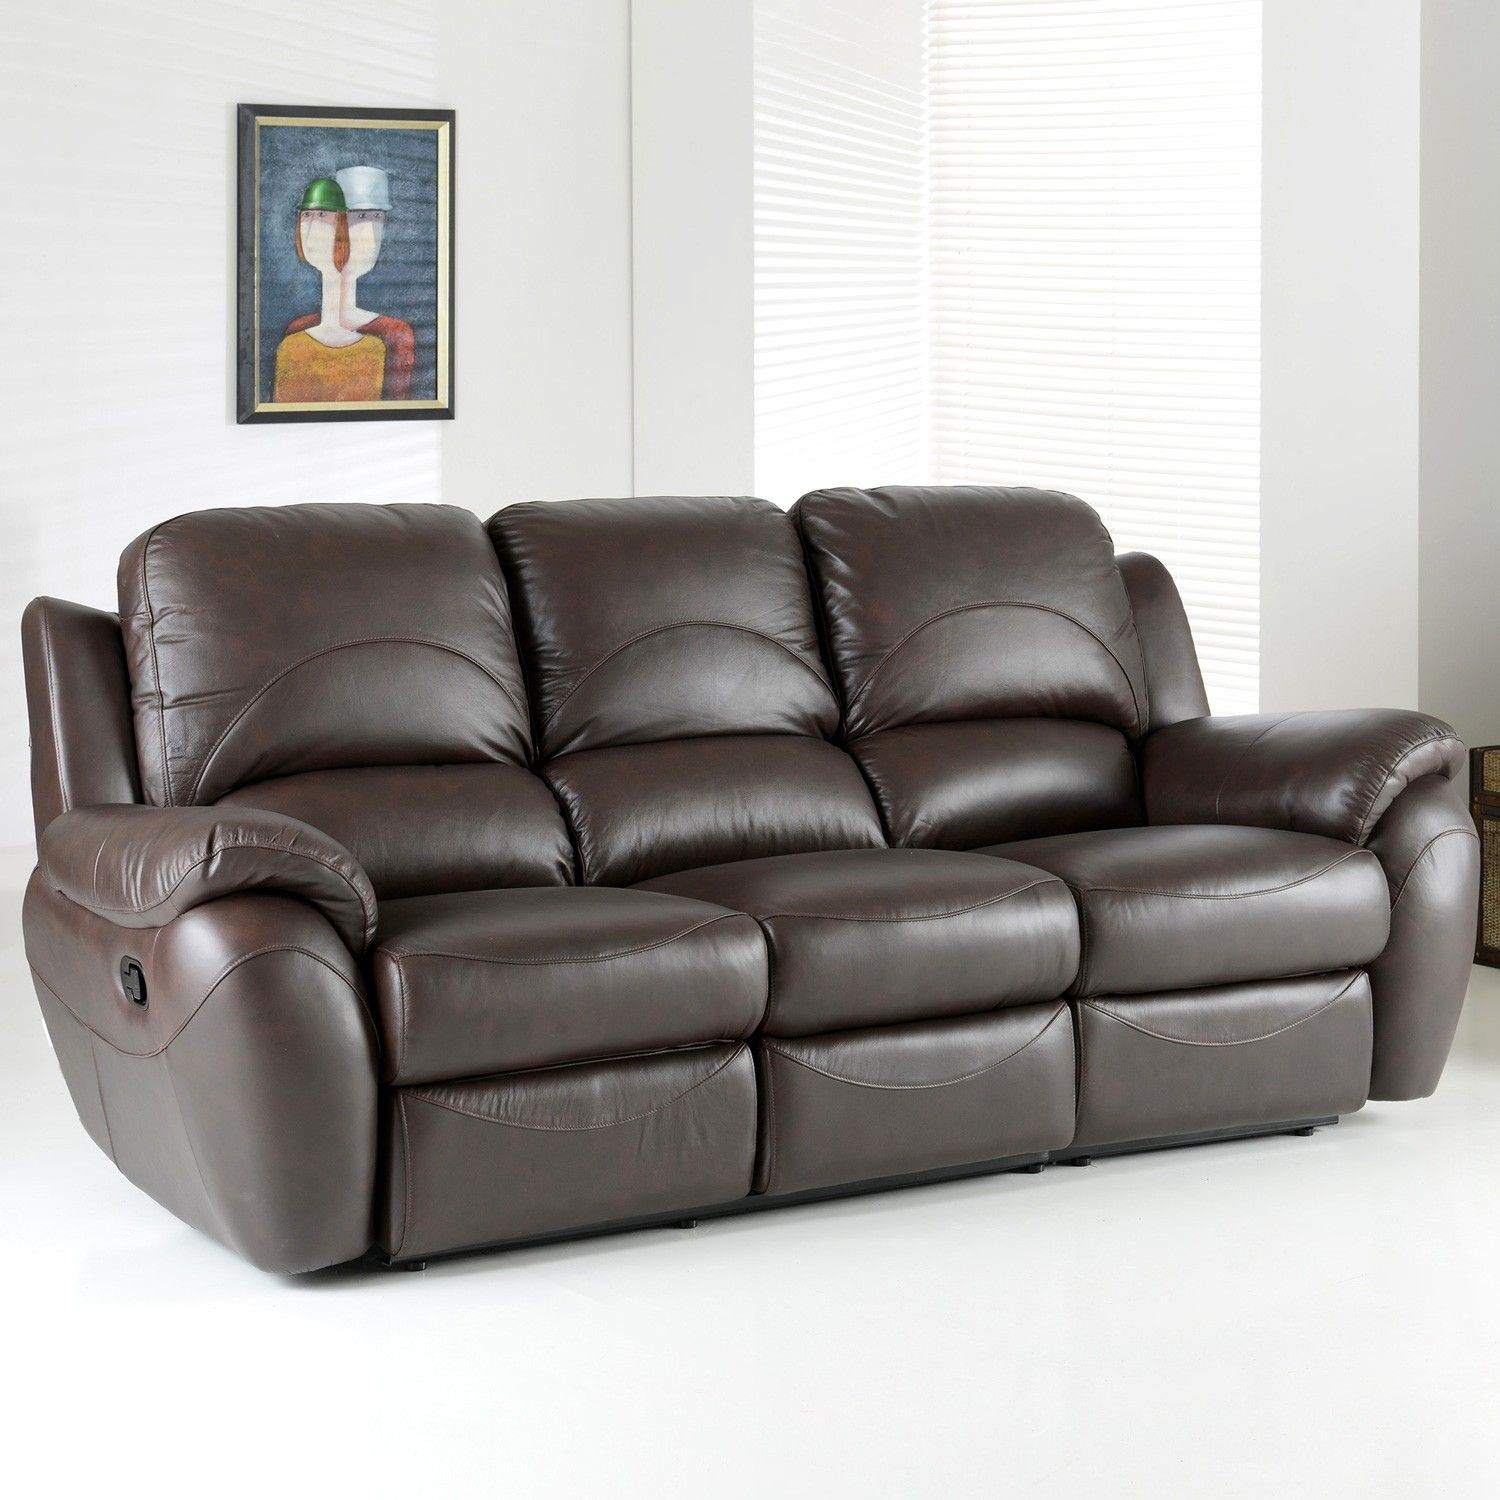 Attractive Living Room Furniture Dark Brown Full Grain Leather Recliner Sofa In White  Living Room Lazy Boy